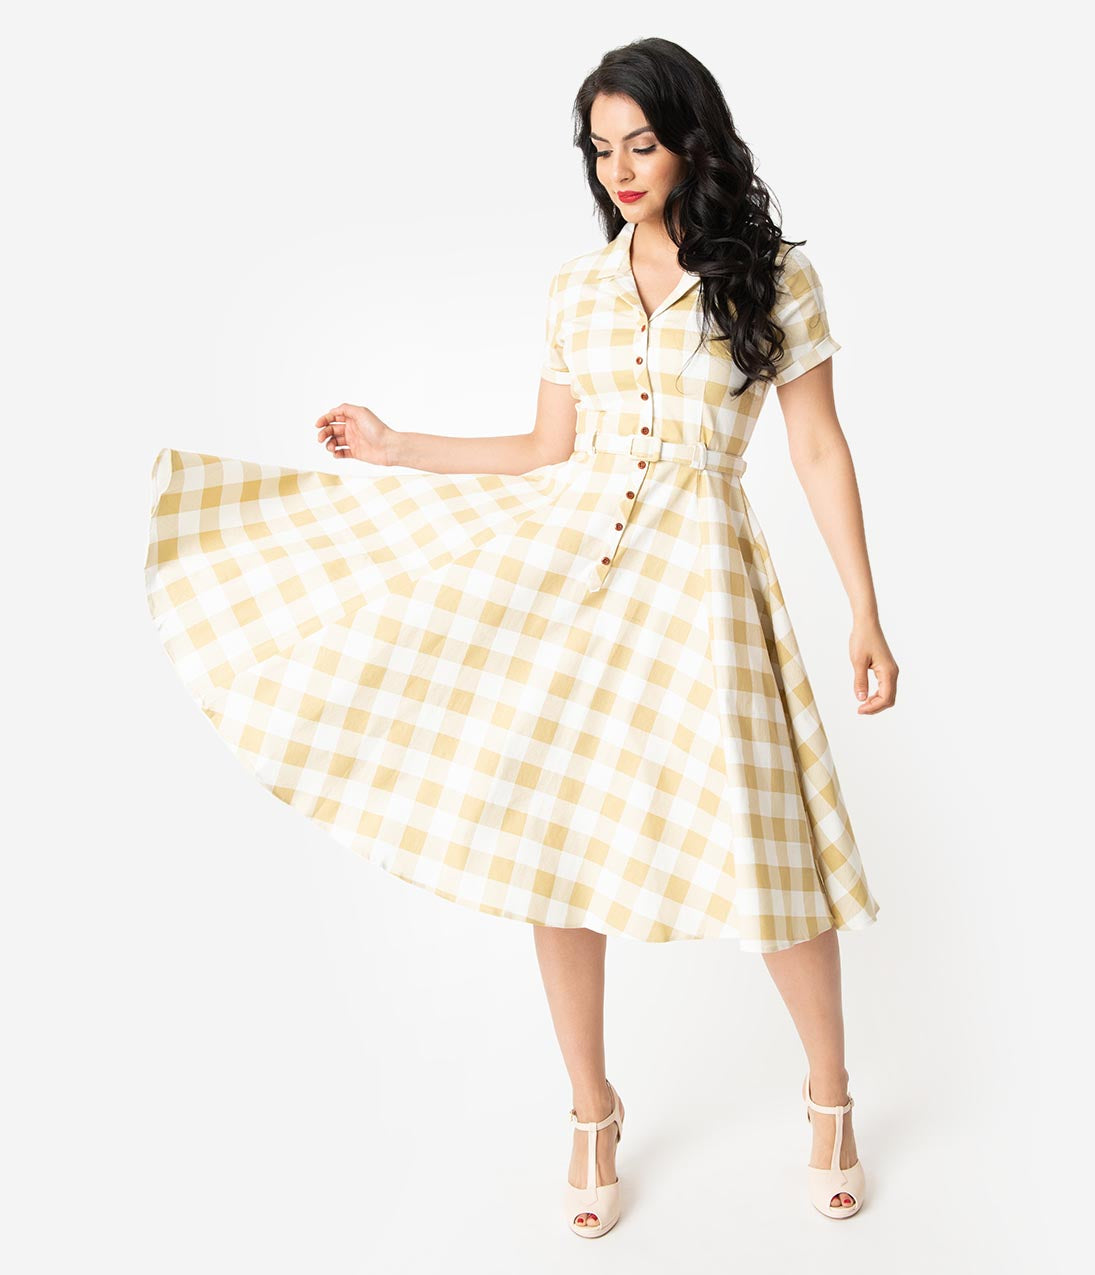 Fifties Dresses : 1950s Style Swing to Wiggle Dresses Collectif 1950S Beige  Ivory Gingham Check Caterina Swing Dress $78.00 AT vintagedancer.com